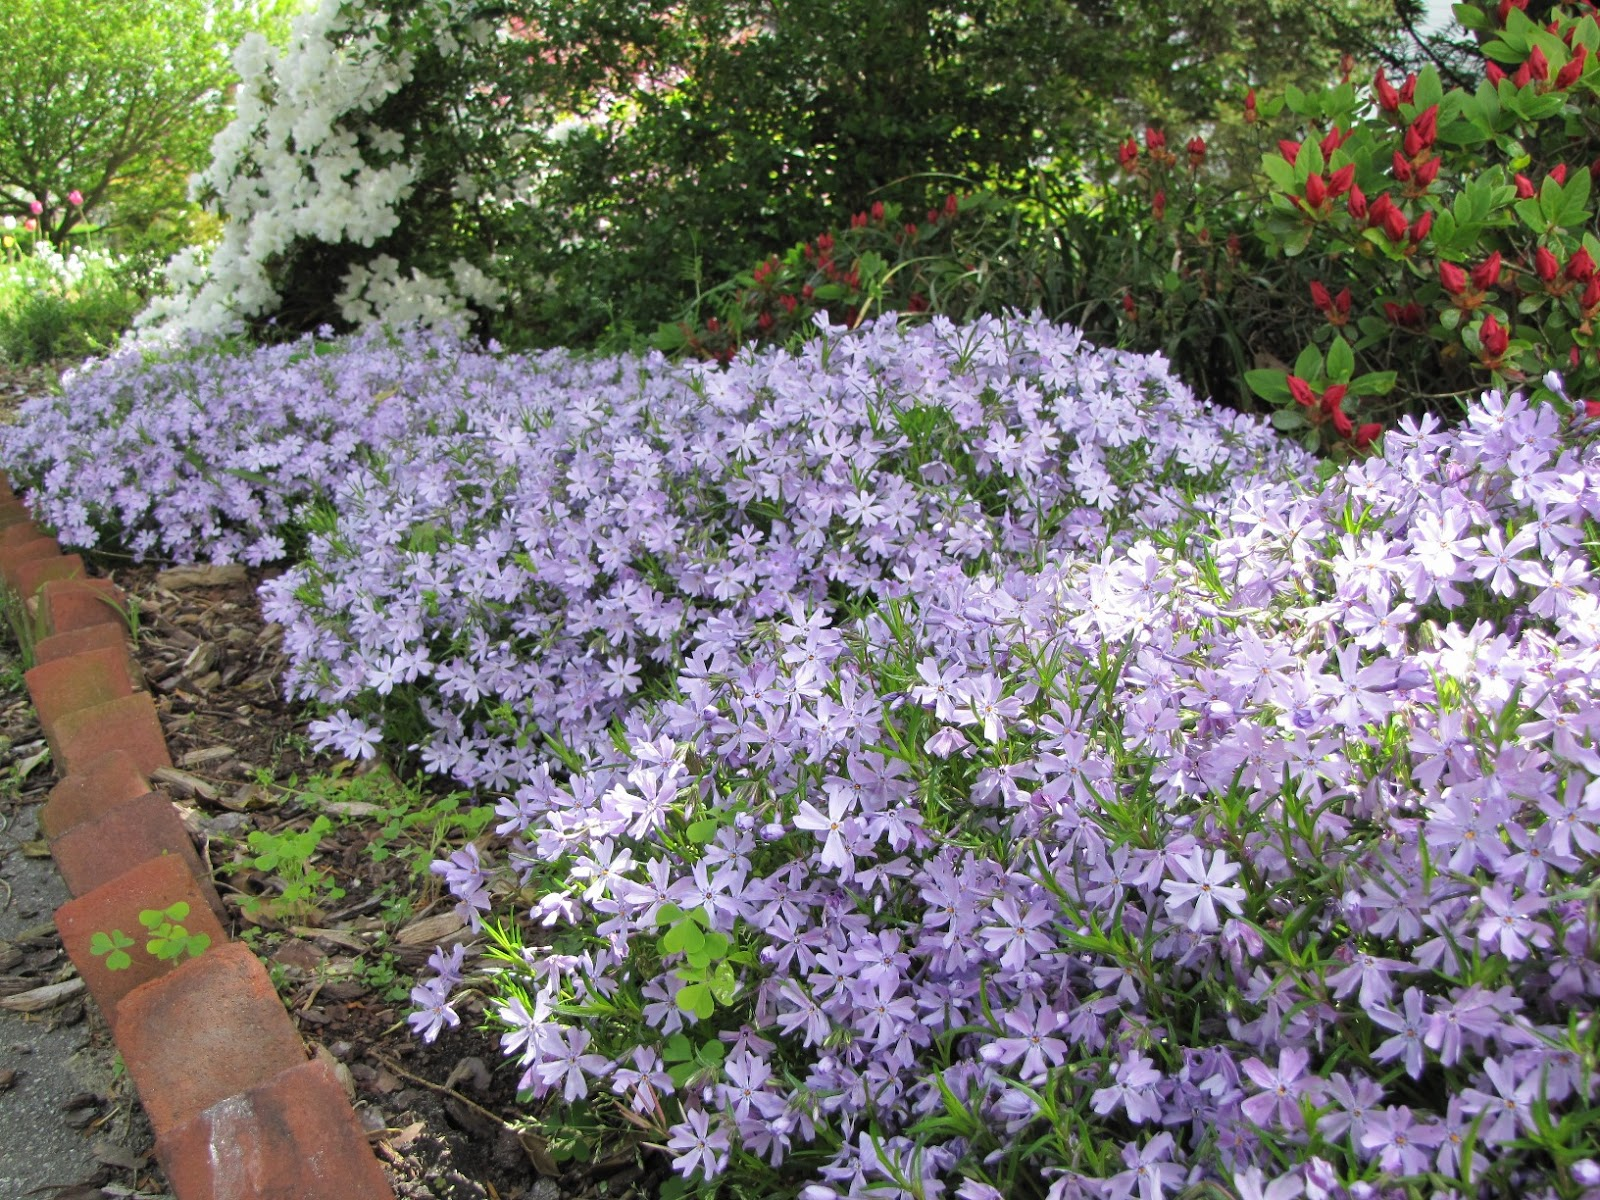 Garden Flower Creeping Phlox